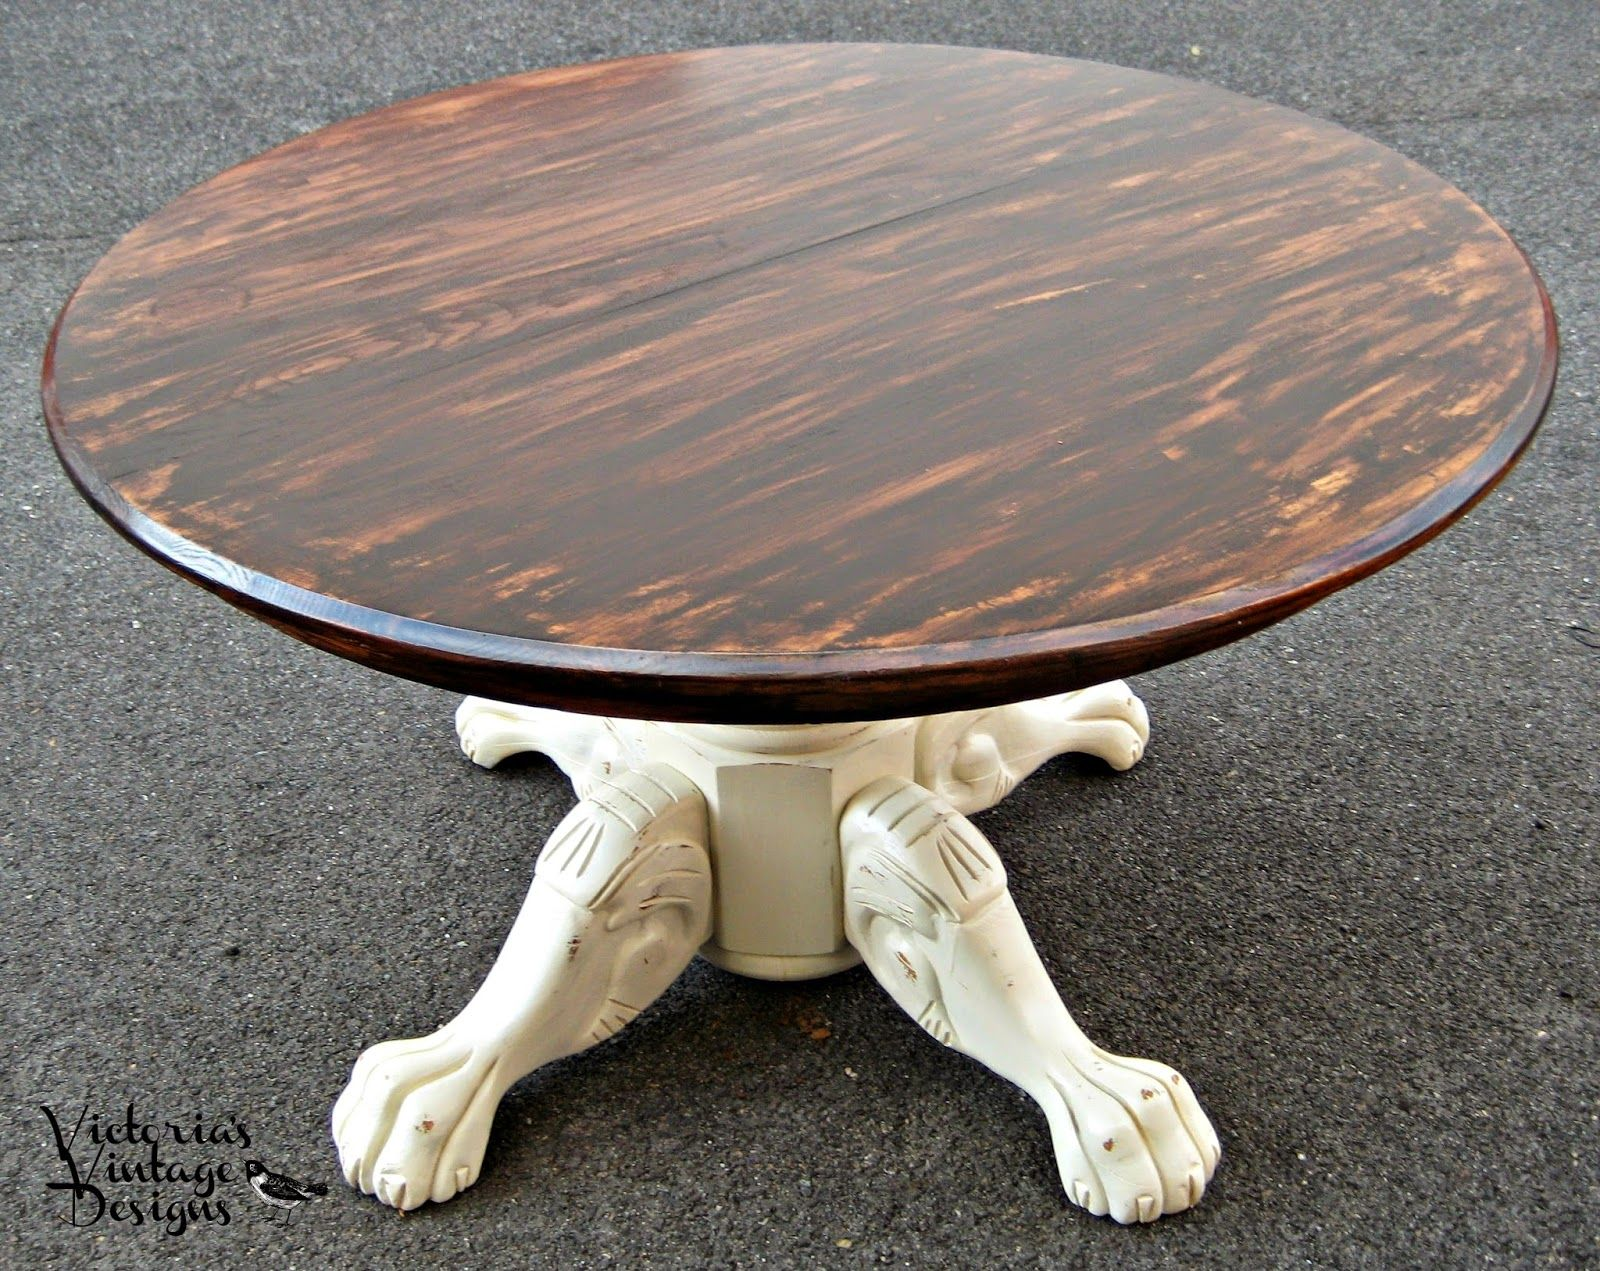 Victoria S Vintage Designs Oak Claw Foot Round Dining Table